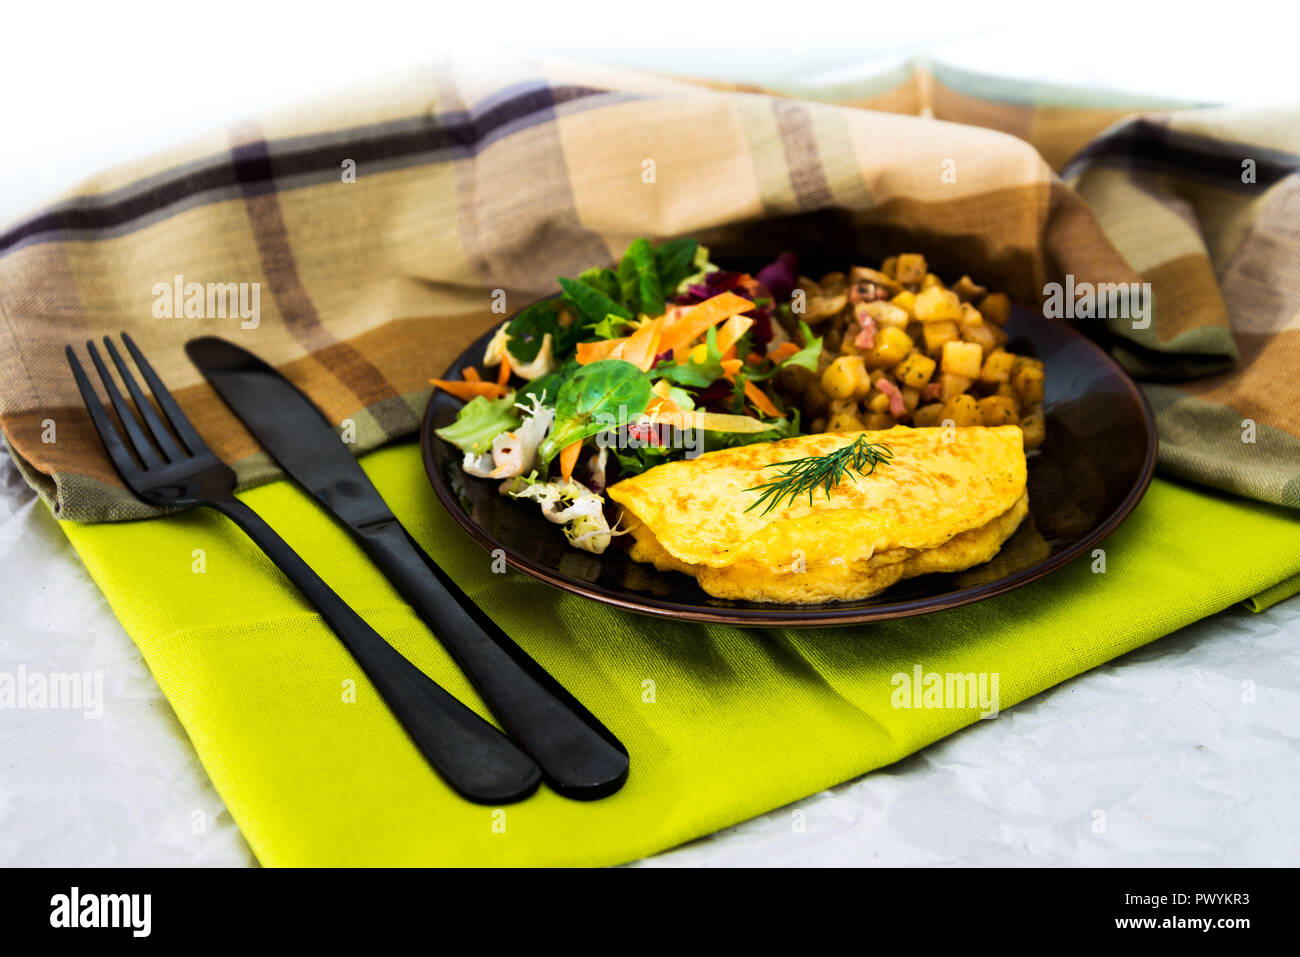 French Omelette with Potatoes, Mushroom and Salad - Stock Image